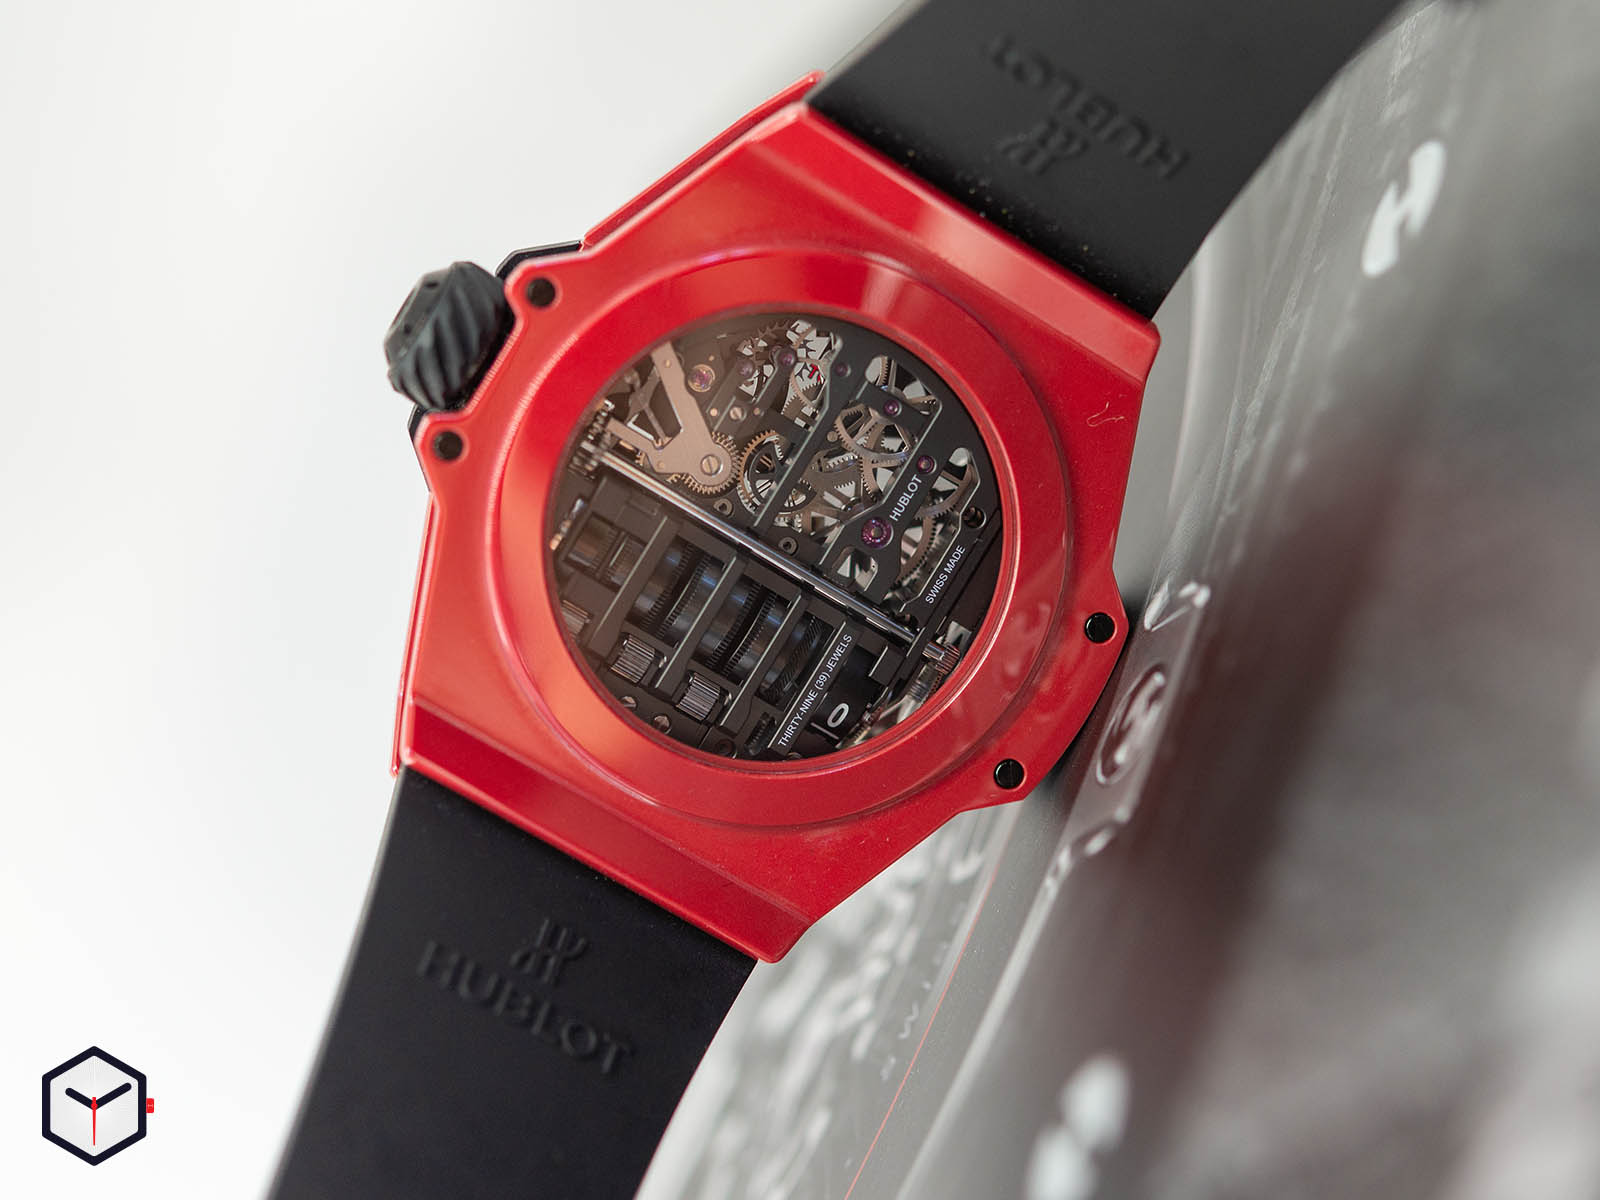 911-cf-0113-rx-hublot-big-bang-mp-11-red-magic-5.jpg